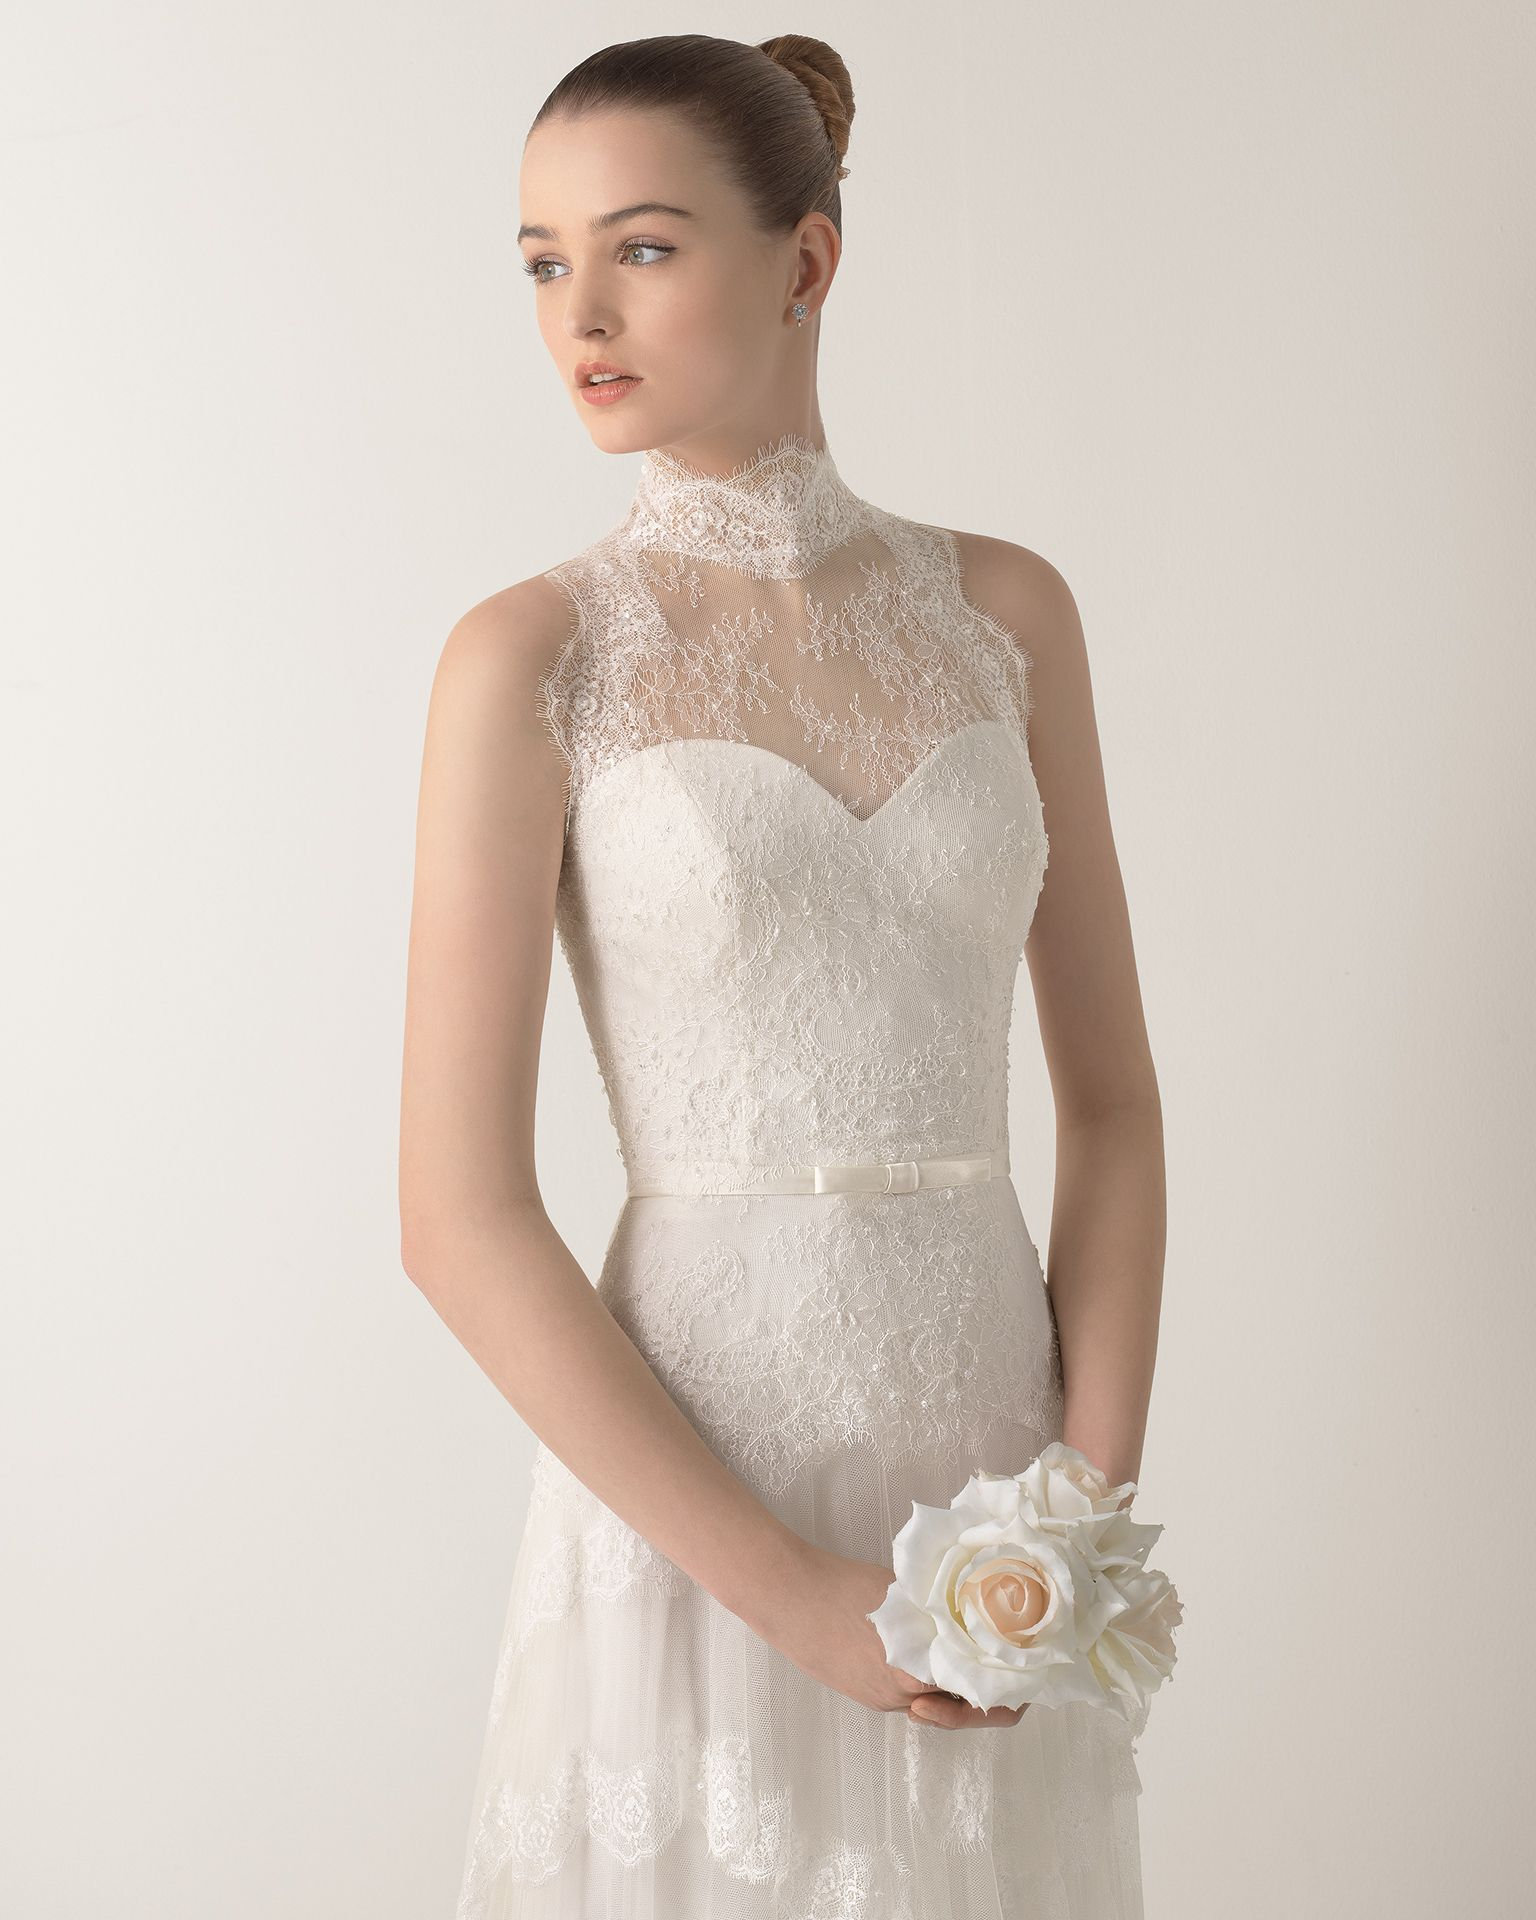 K instinto wedding dresses soft collection rosa clara